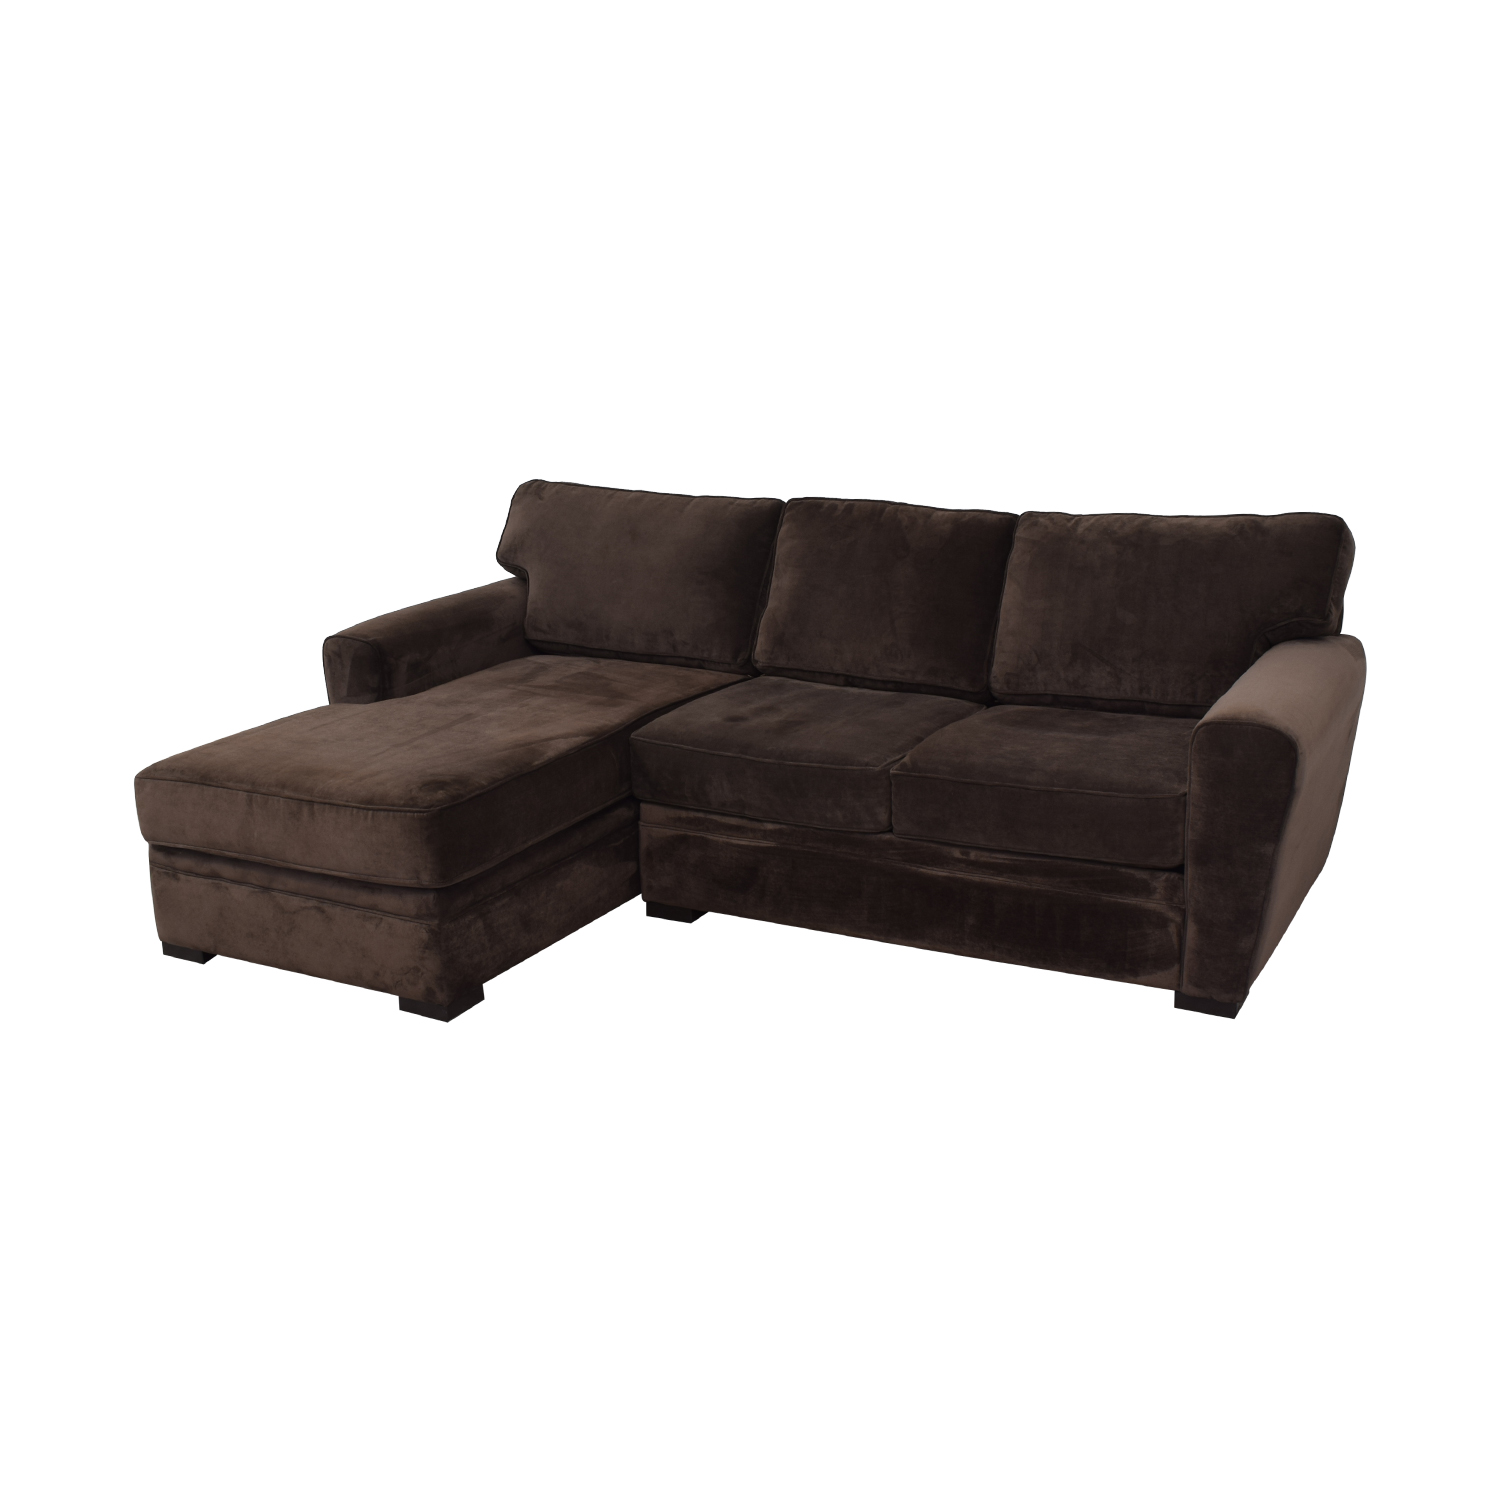 buy Raymour & Flanigan Artemis II Brown Microfiber Chaise Sectional Raymour & Flanigan Sofas